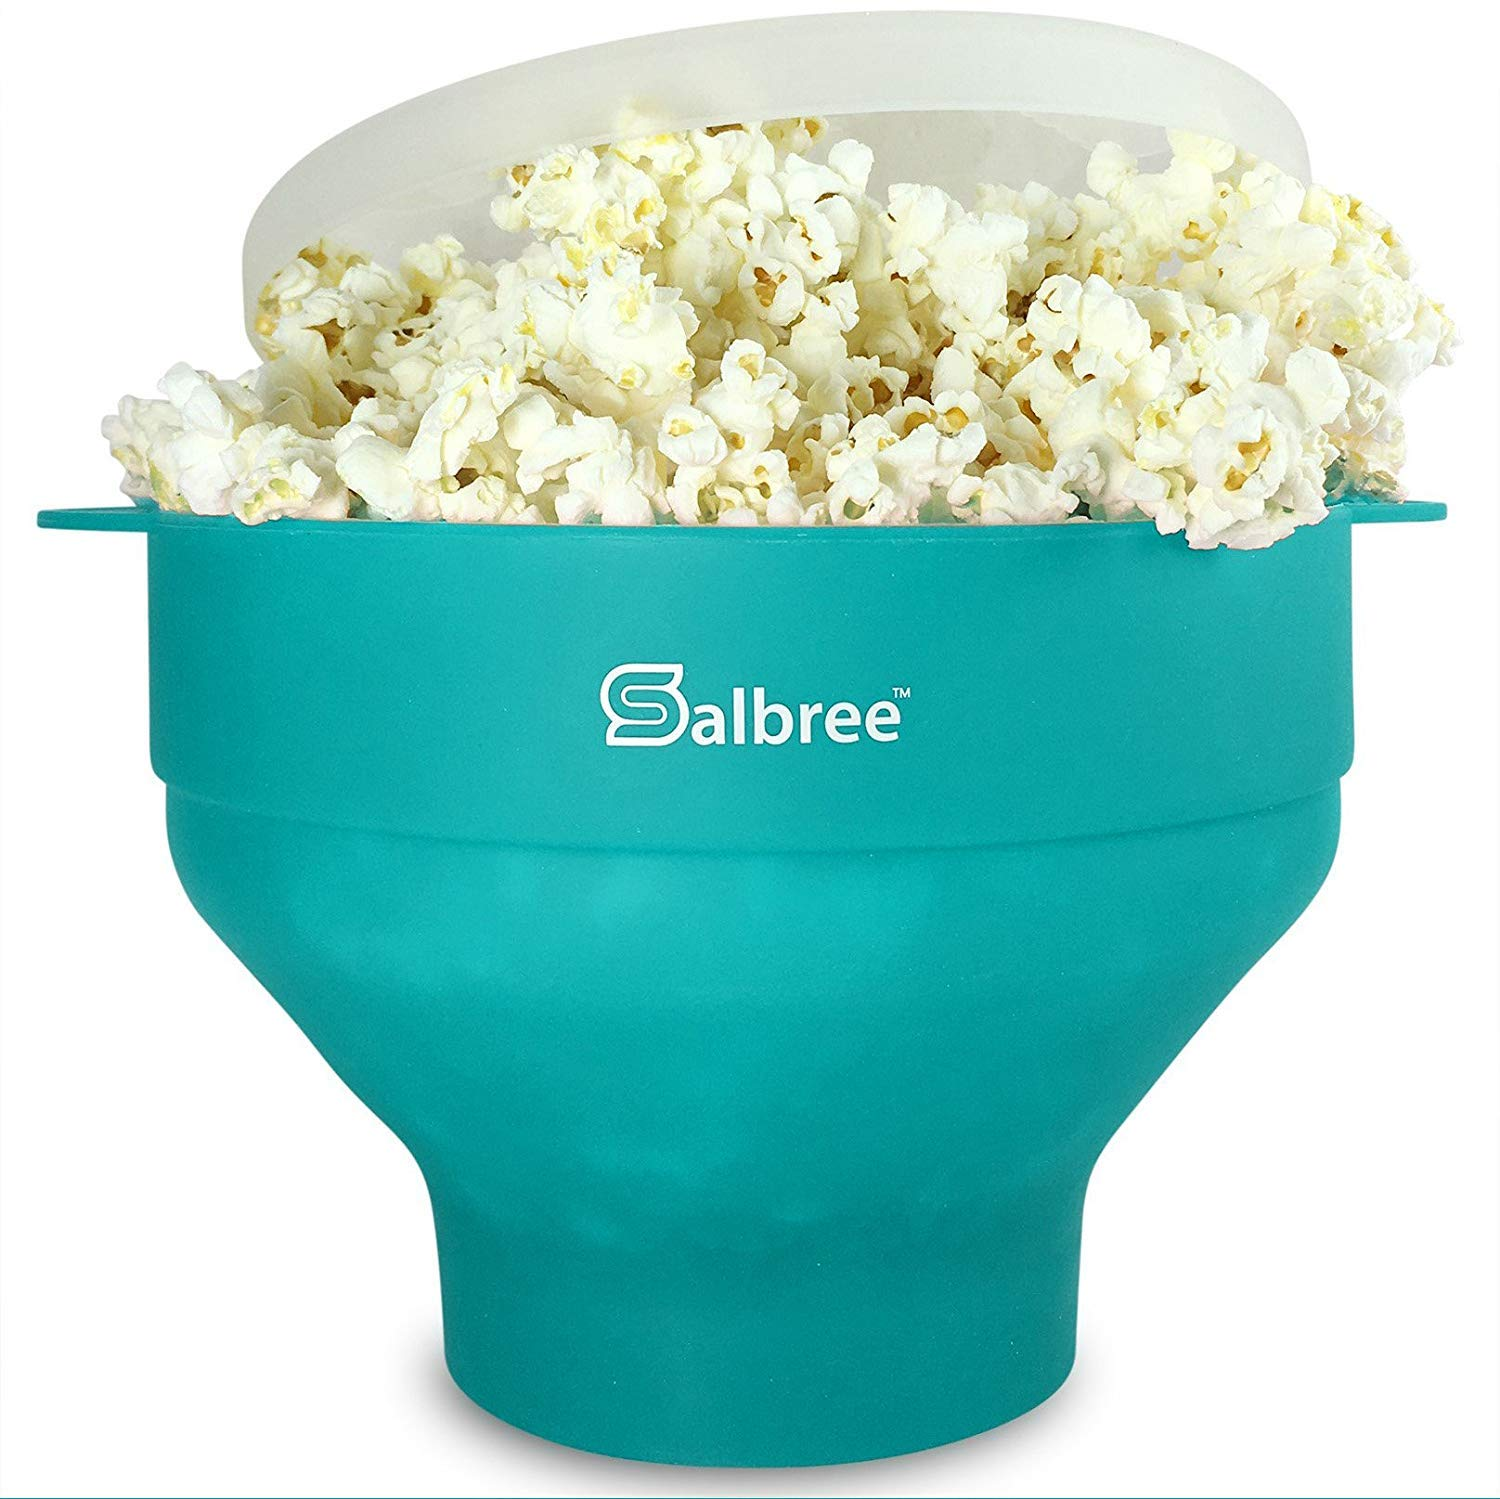 The Original Microwave Popcorn Popper -The Healthy Alternative to Bagged Popcorn - 14 Color Choices - by Salbree (Coral)